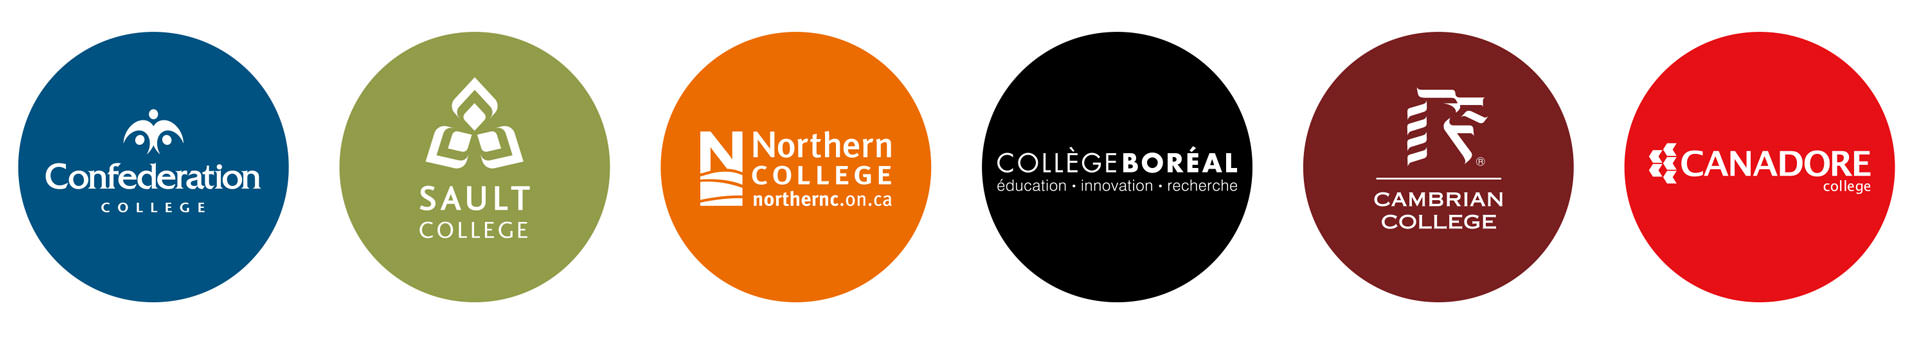 logos-colleges-row